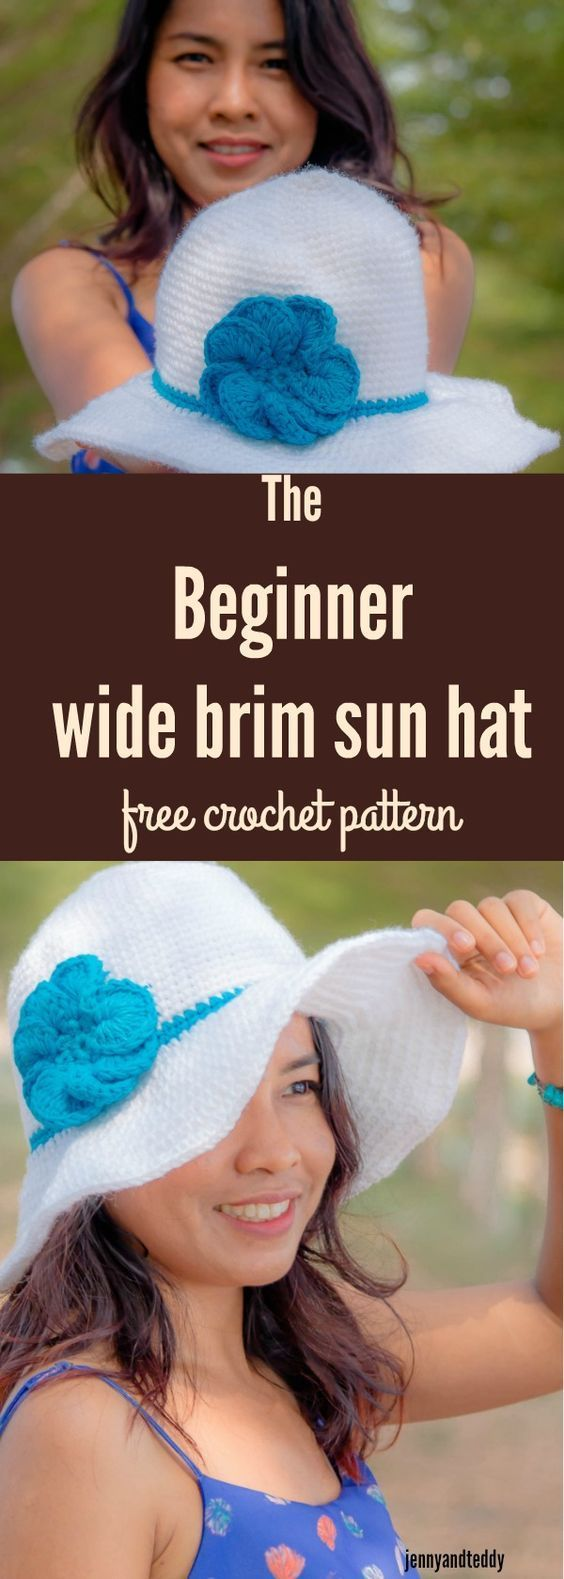 This beginner wide brim sun hat free crochet pattern so quick and